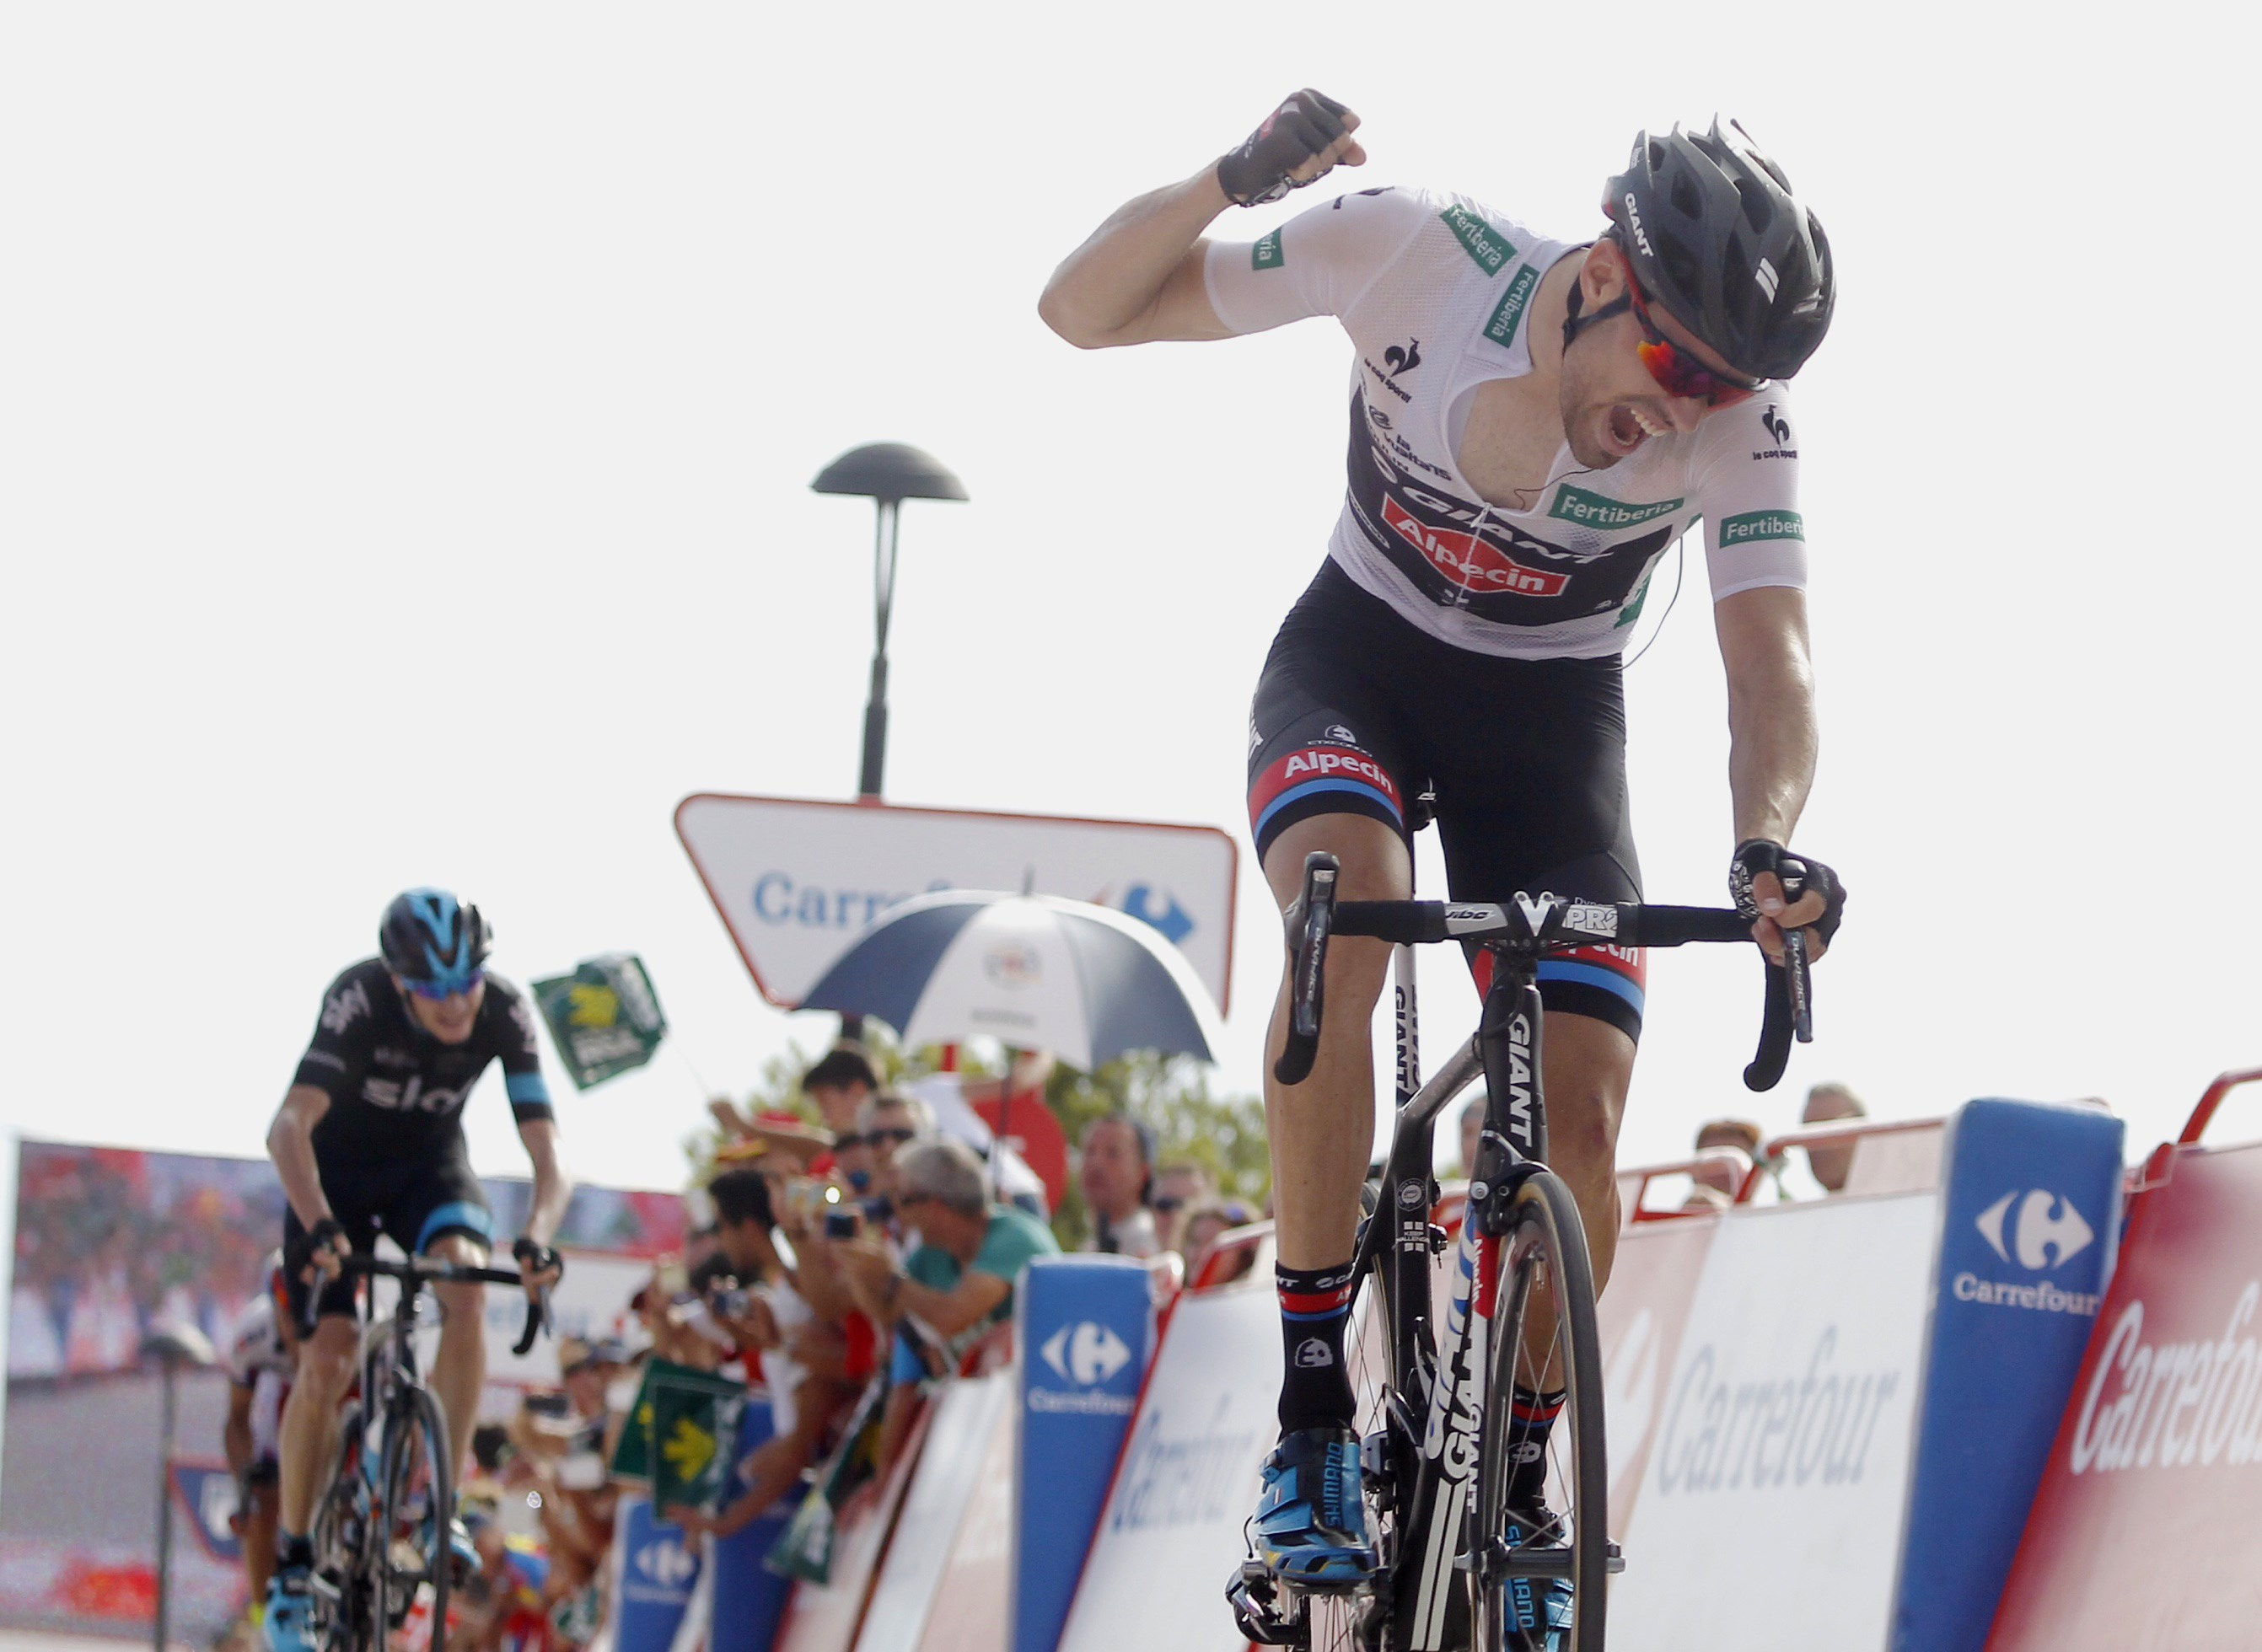 Thumbnail: Dumoulin punches the air after winning stage 9. - JOSE JORDAN/AFP/Getty Images.